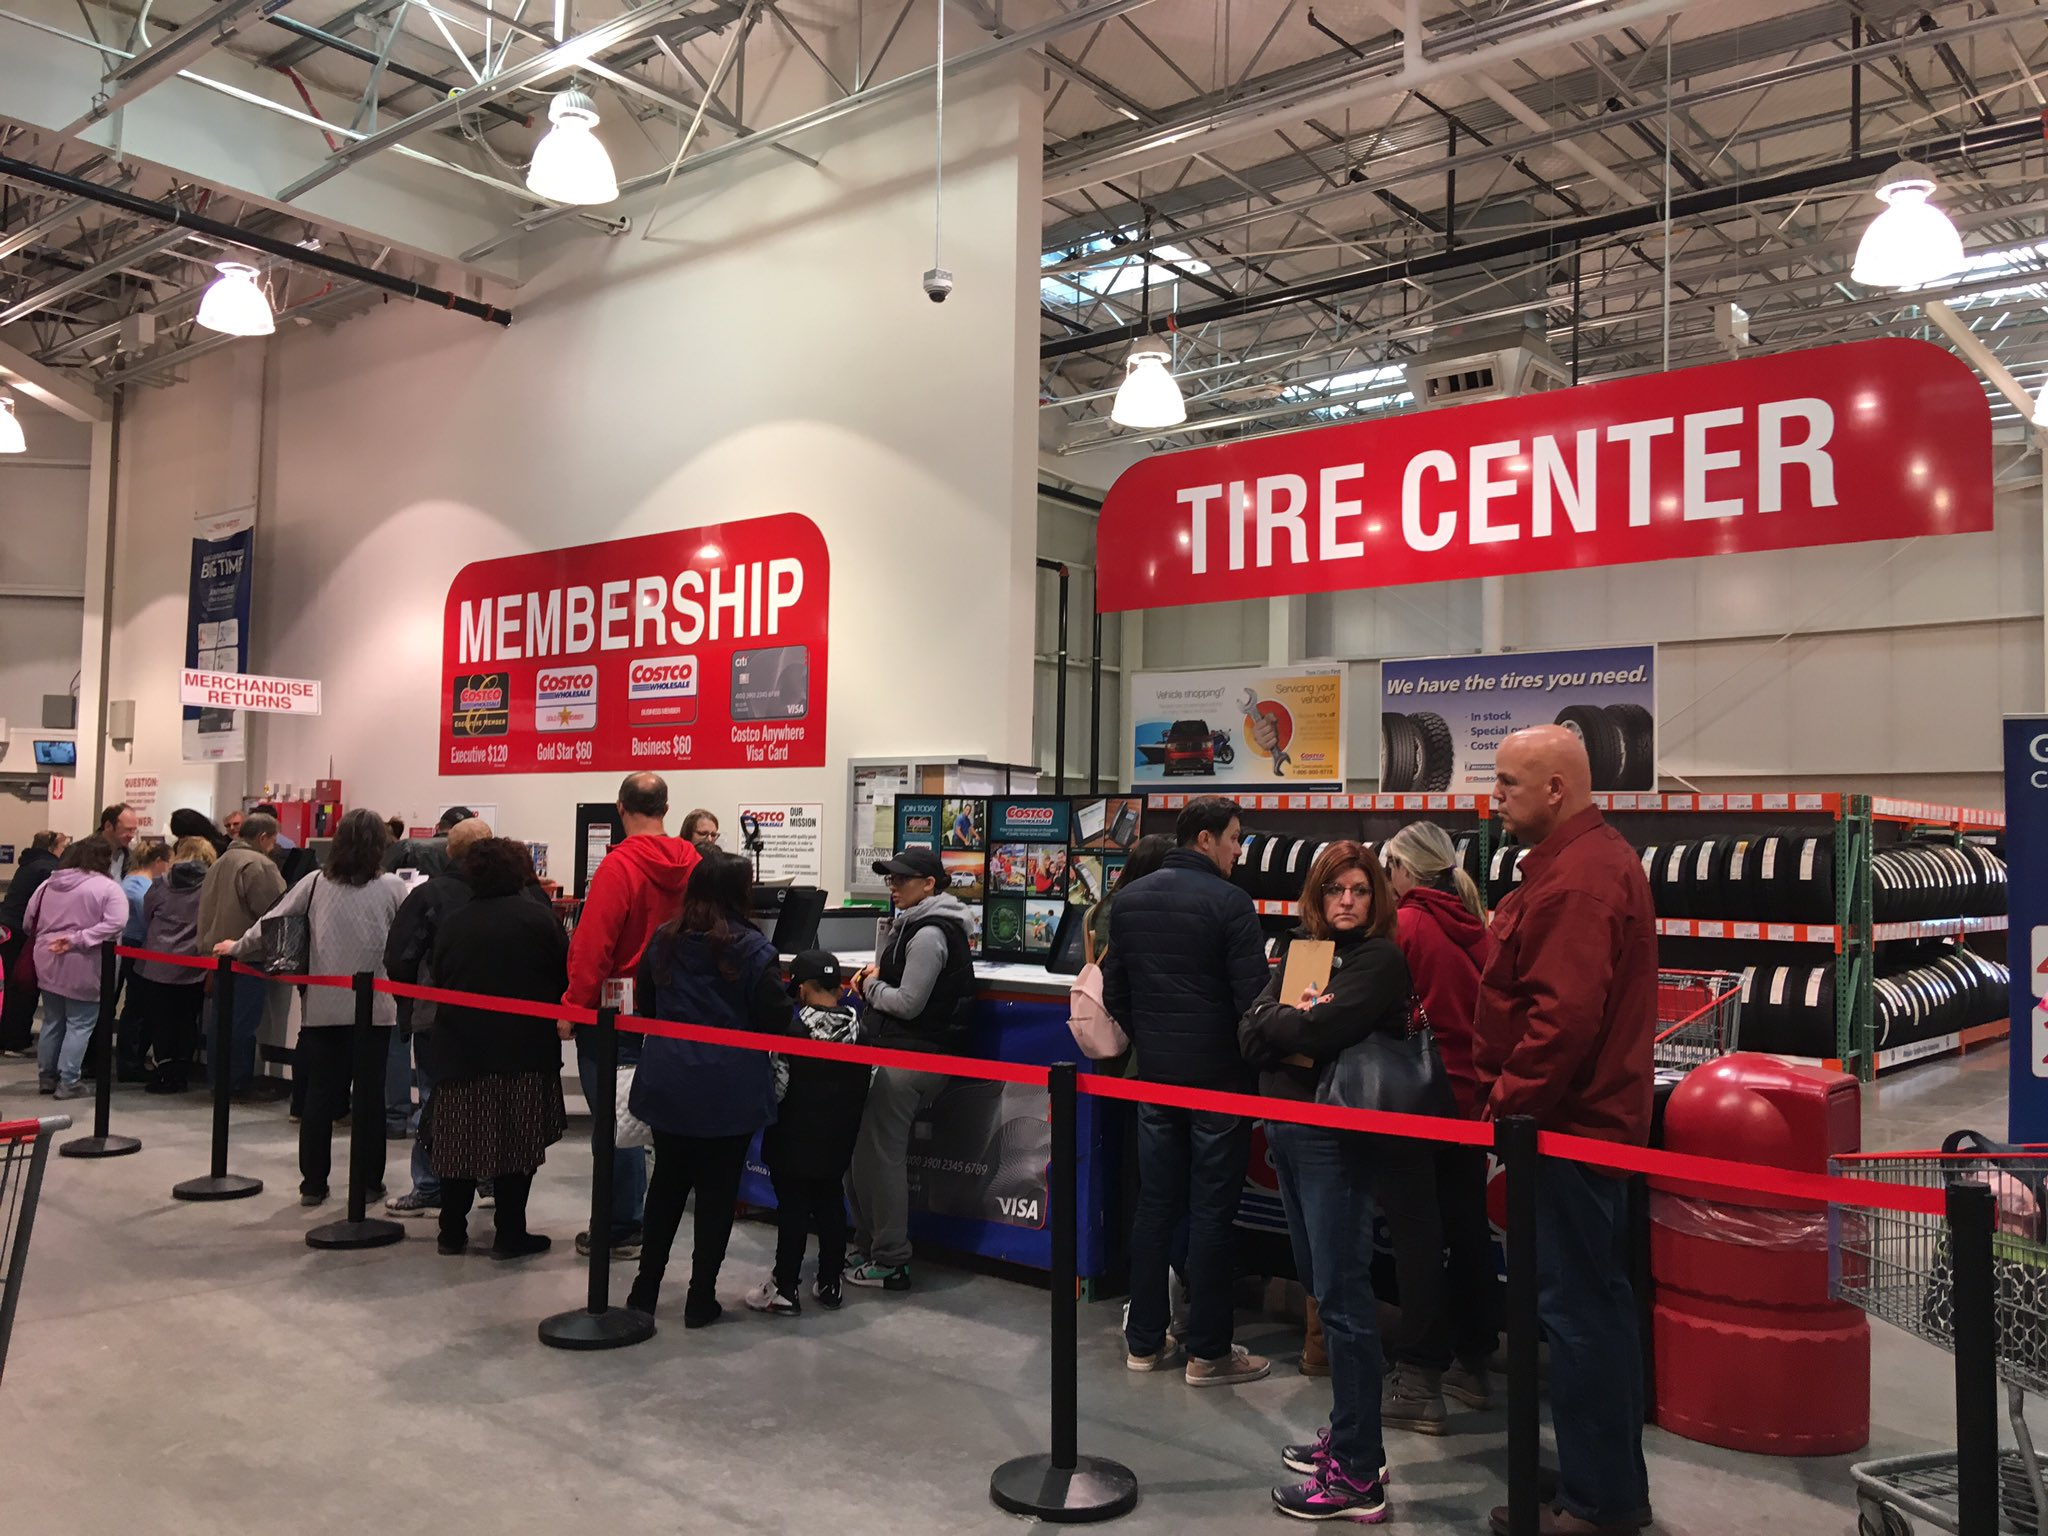 ((Fun Fact: Costco is currently overwhelmed with overflow of Sam's Club Refugees trying to become members.)) https://t.co/Rr3E7QJN1X